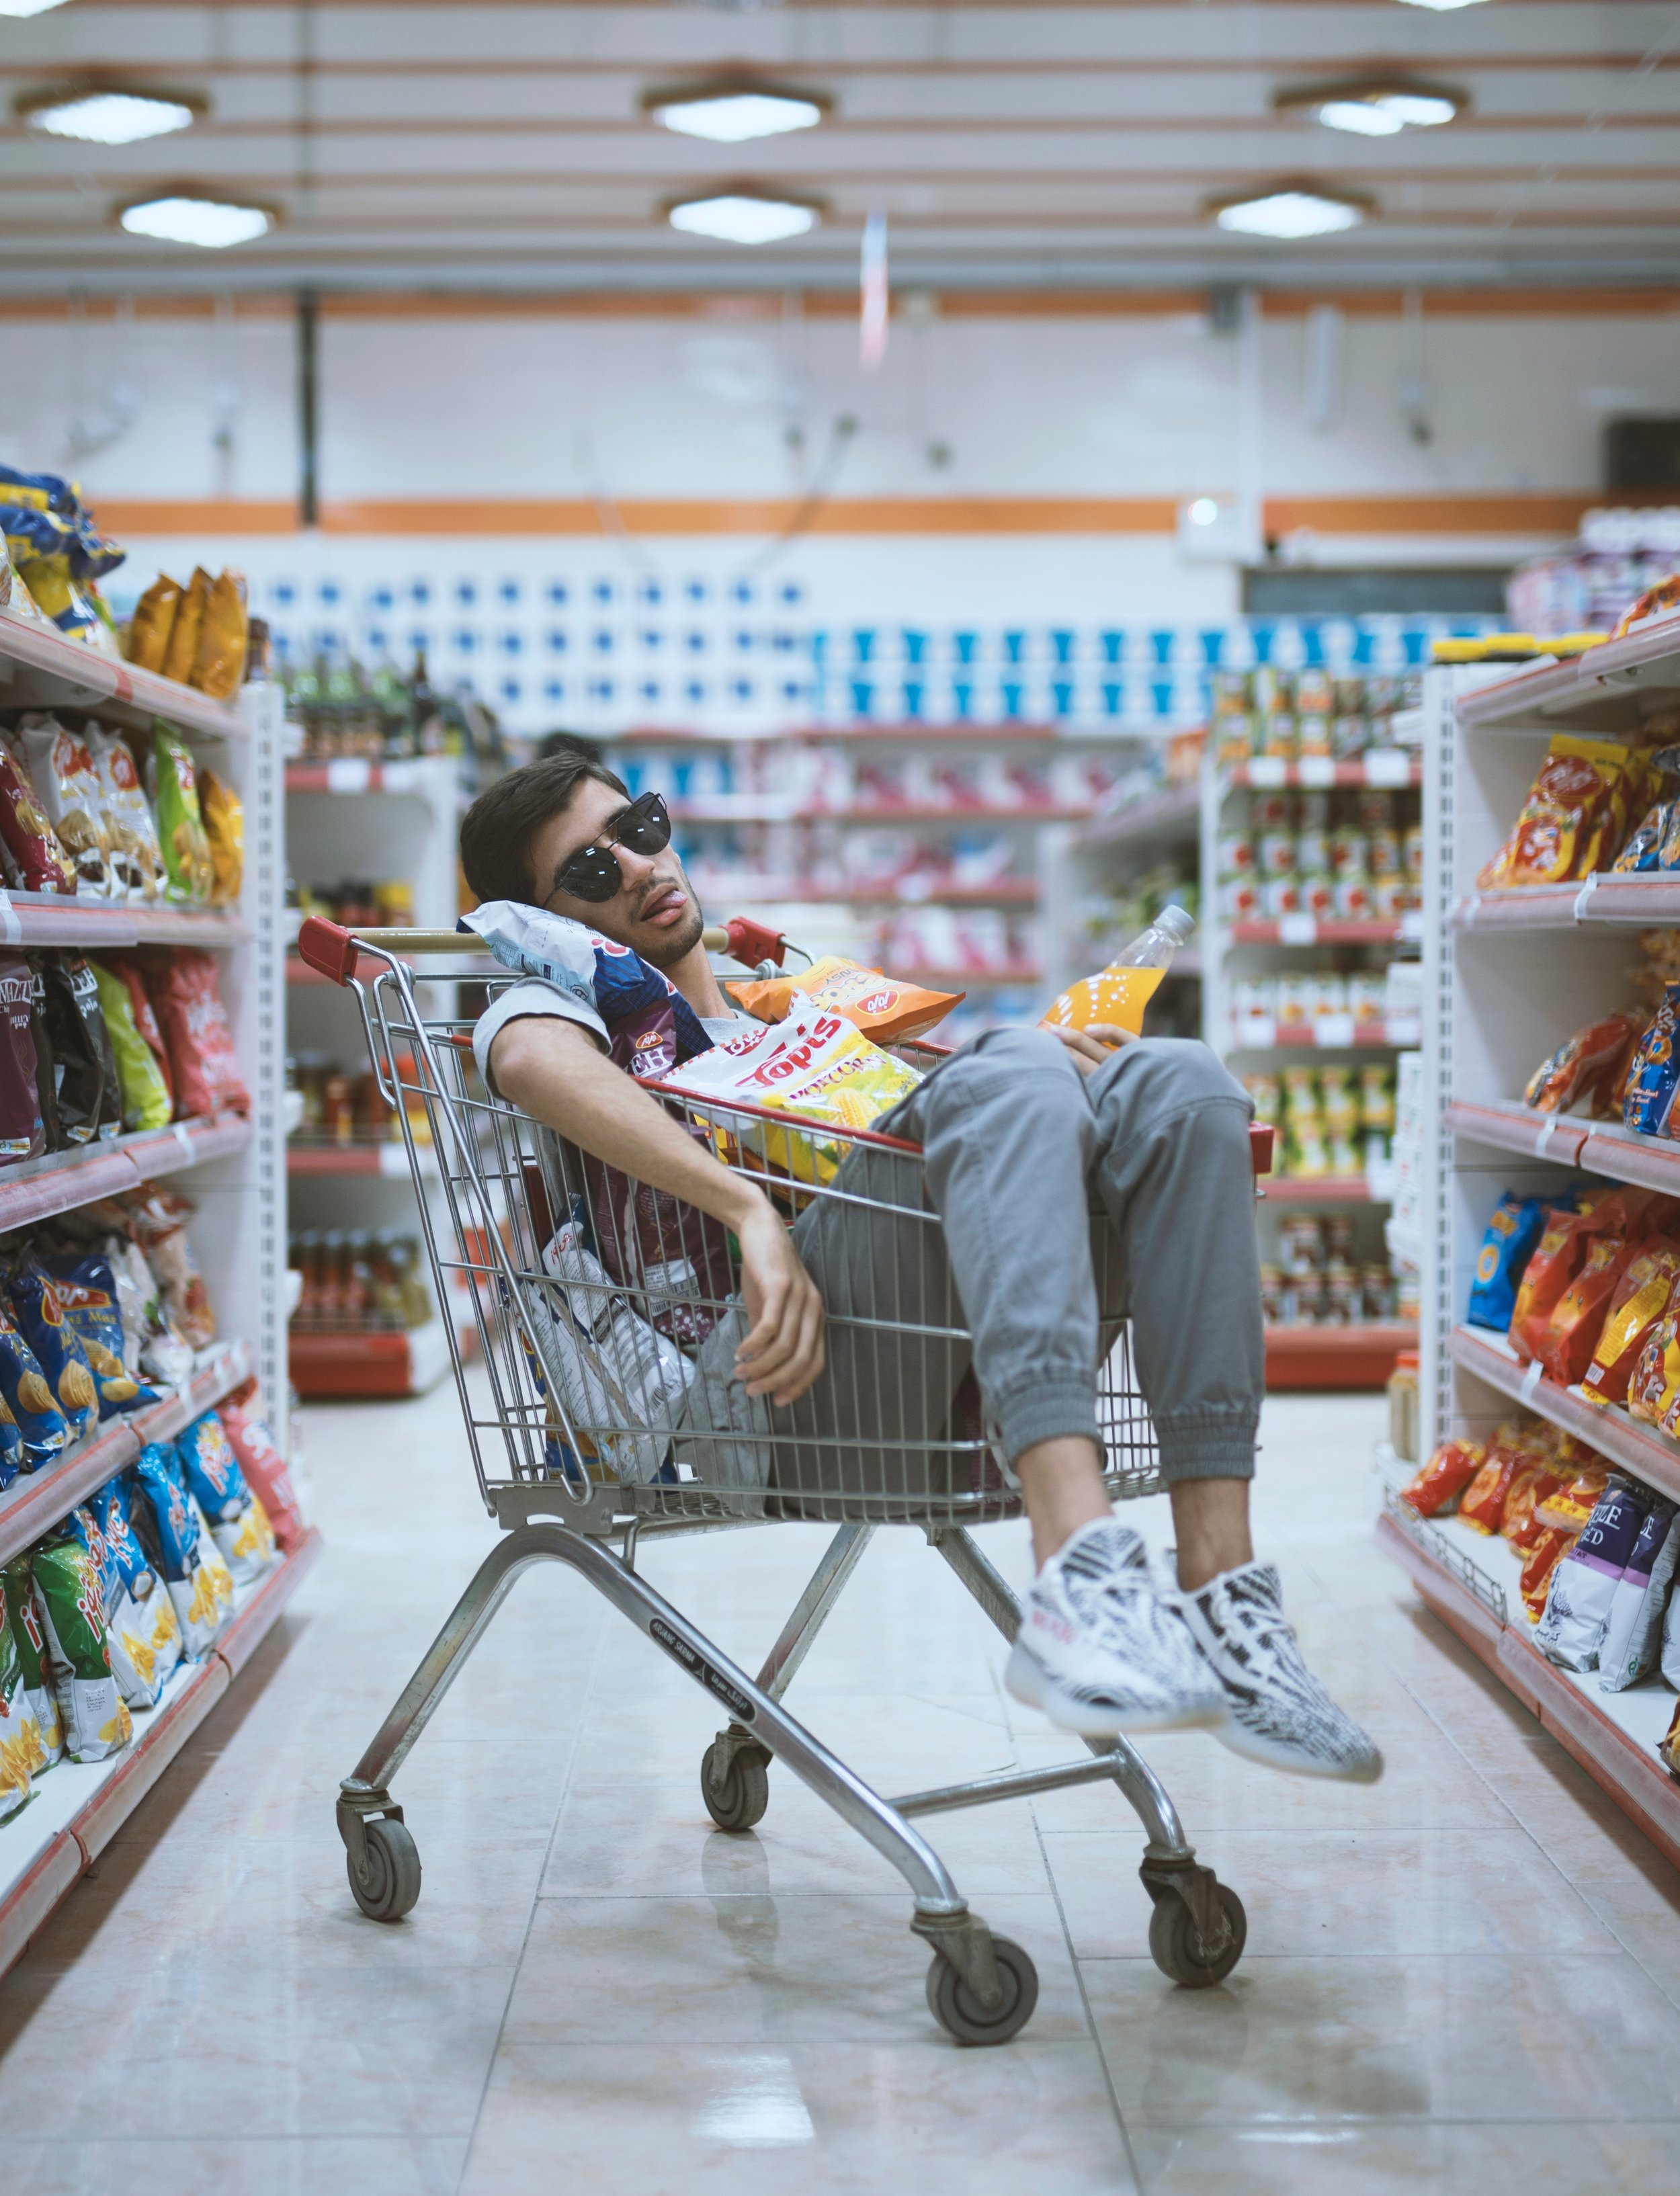 This young man was found after staring at the coffee shelves in the Aisle 5 for too long.  People felt for him and left various items in his cart.  Photo by  Mohammad Sanaei  on  Unsplash